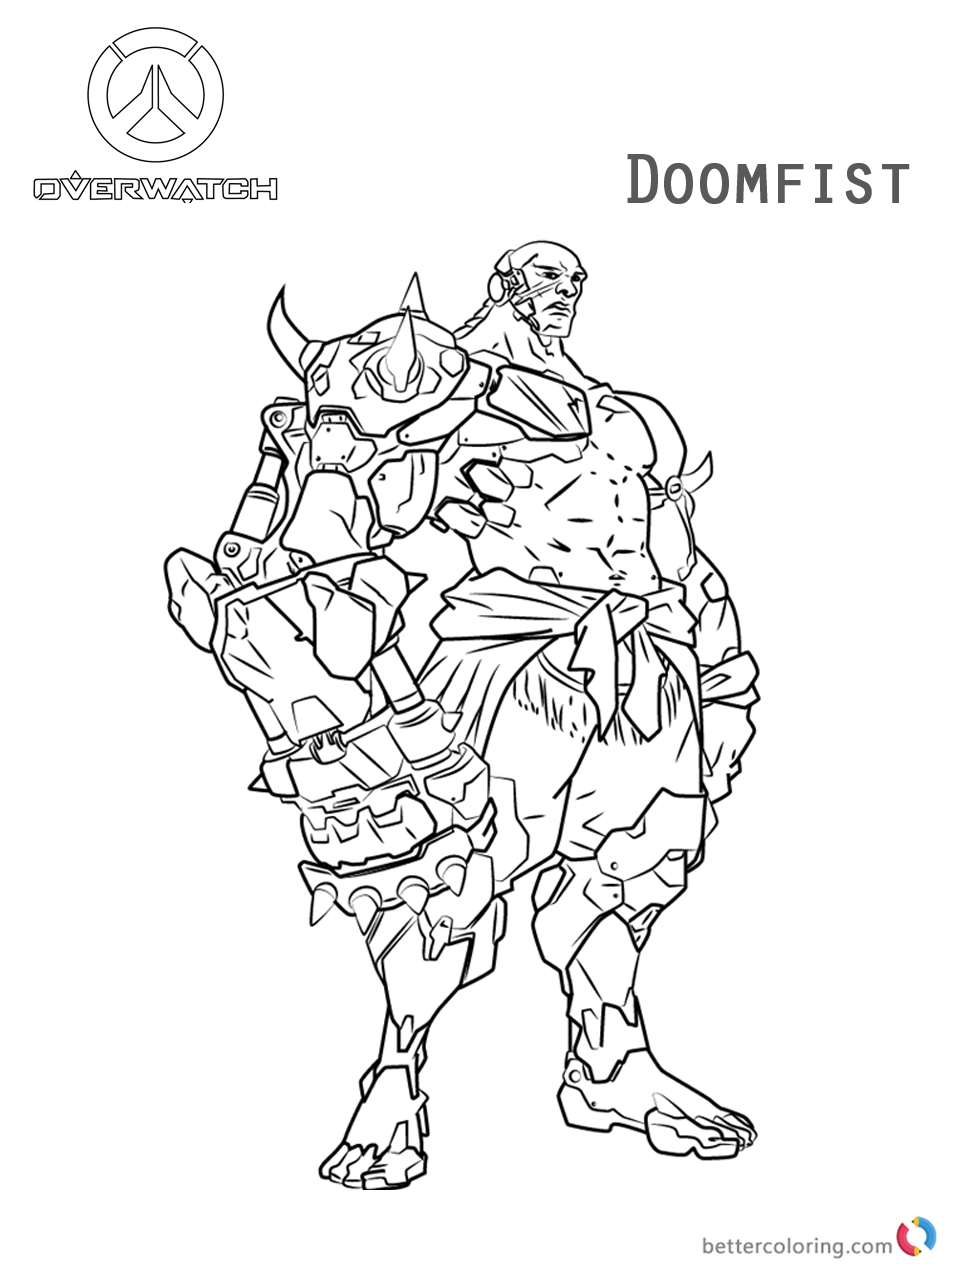 Doomfist From Overwatch Coloring Pages Free Printable